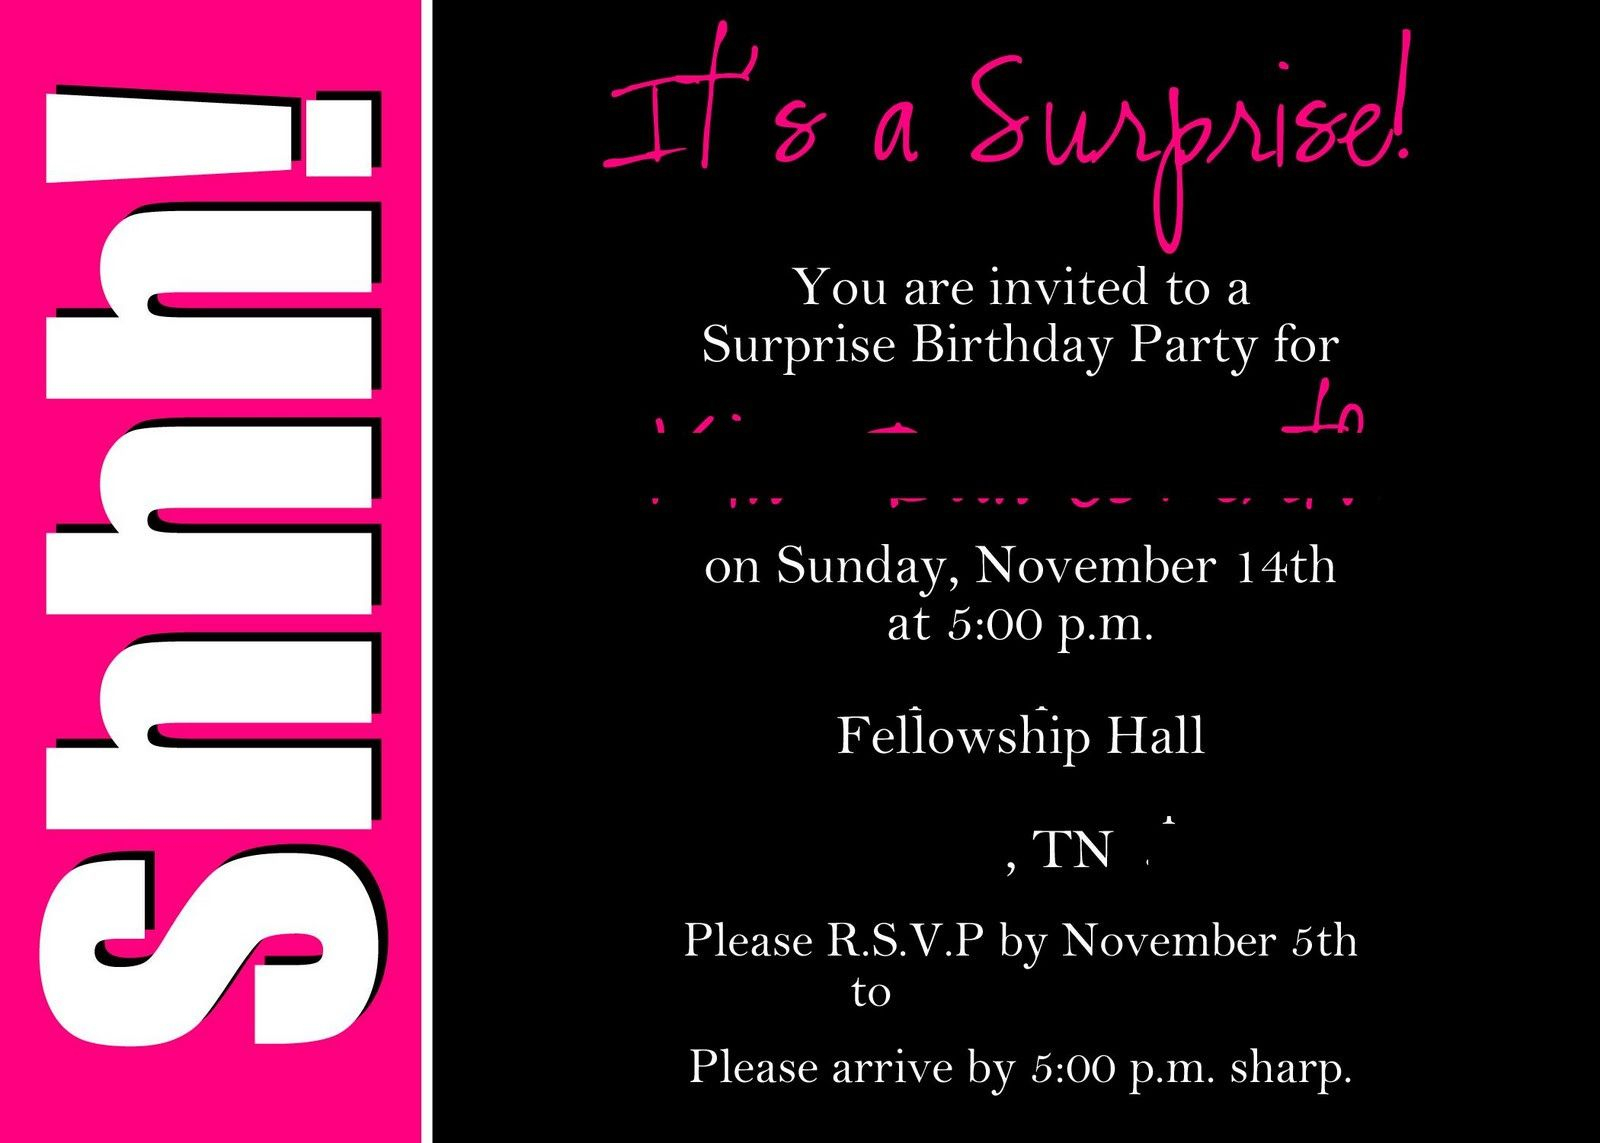 40Th Surprise Birthday Party | Free Printable Birthday Invitation - Free Printable Surprise 40Th Birthday Party Invitations